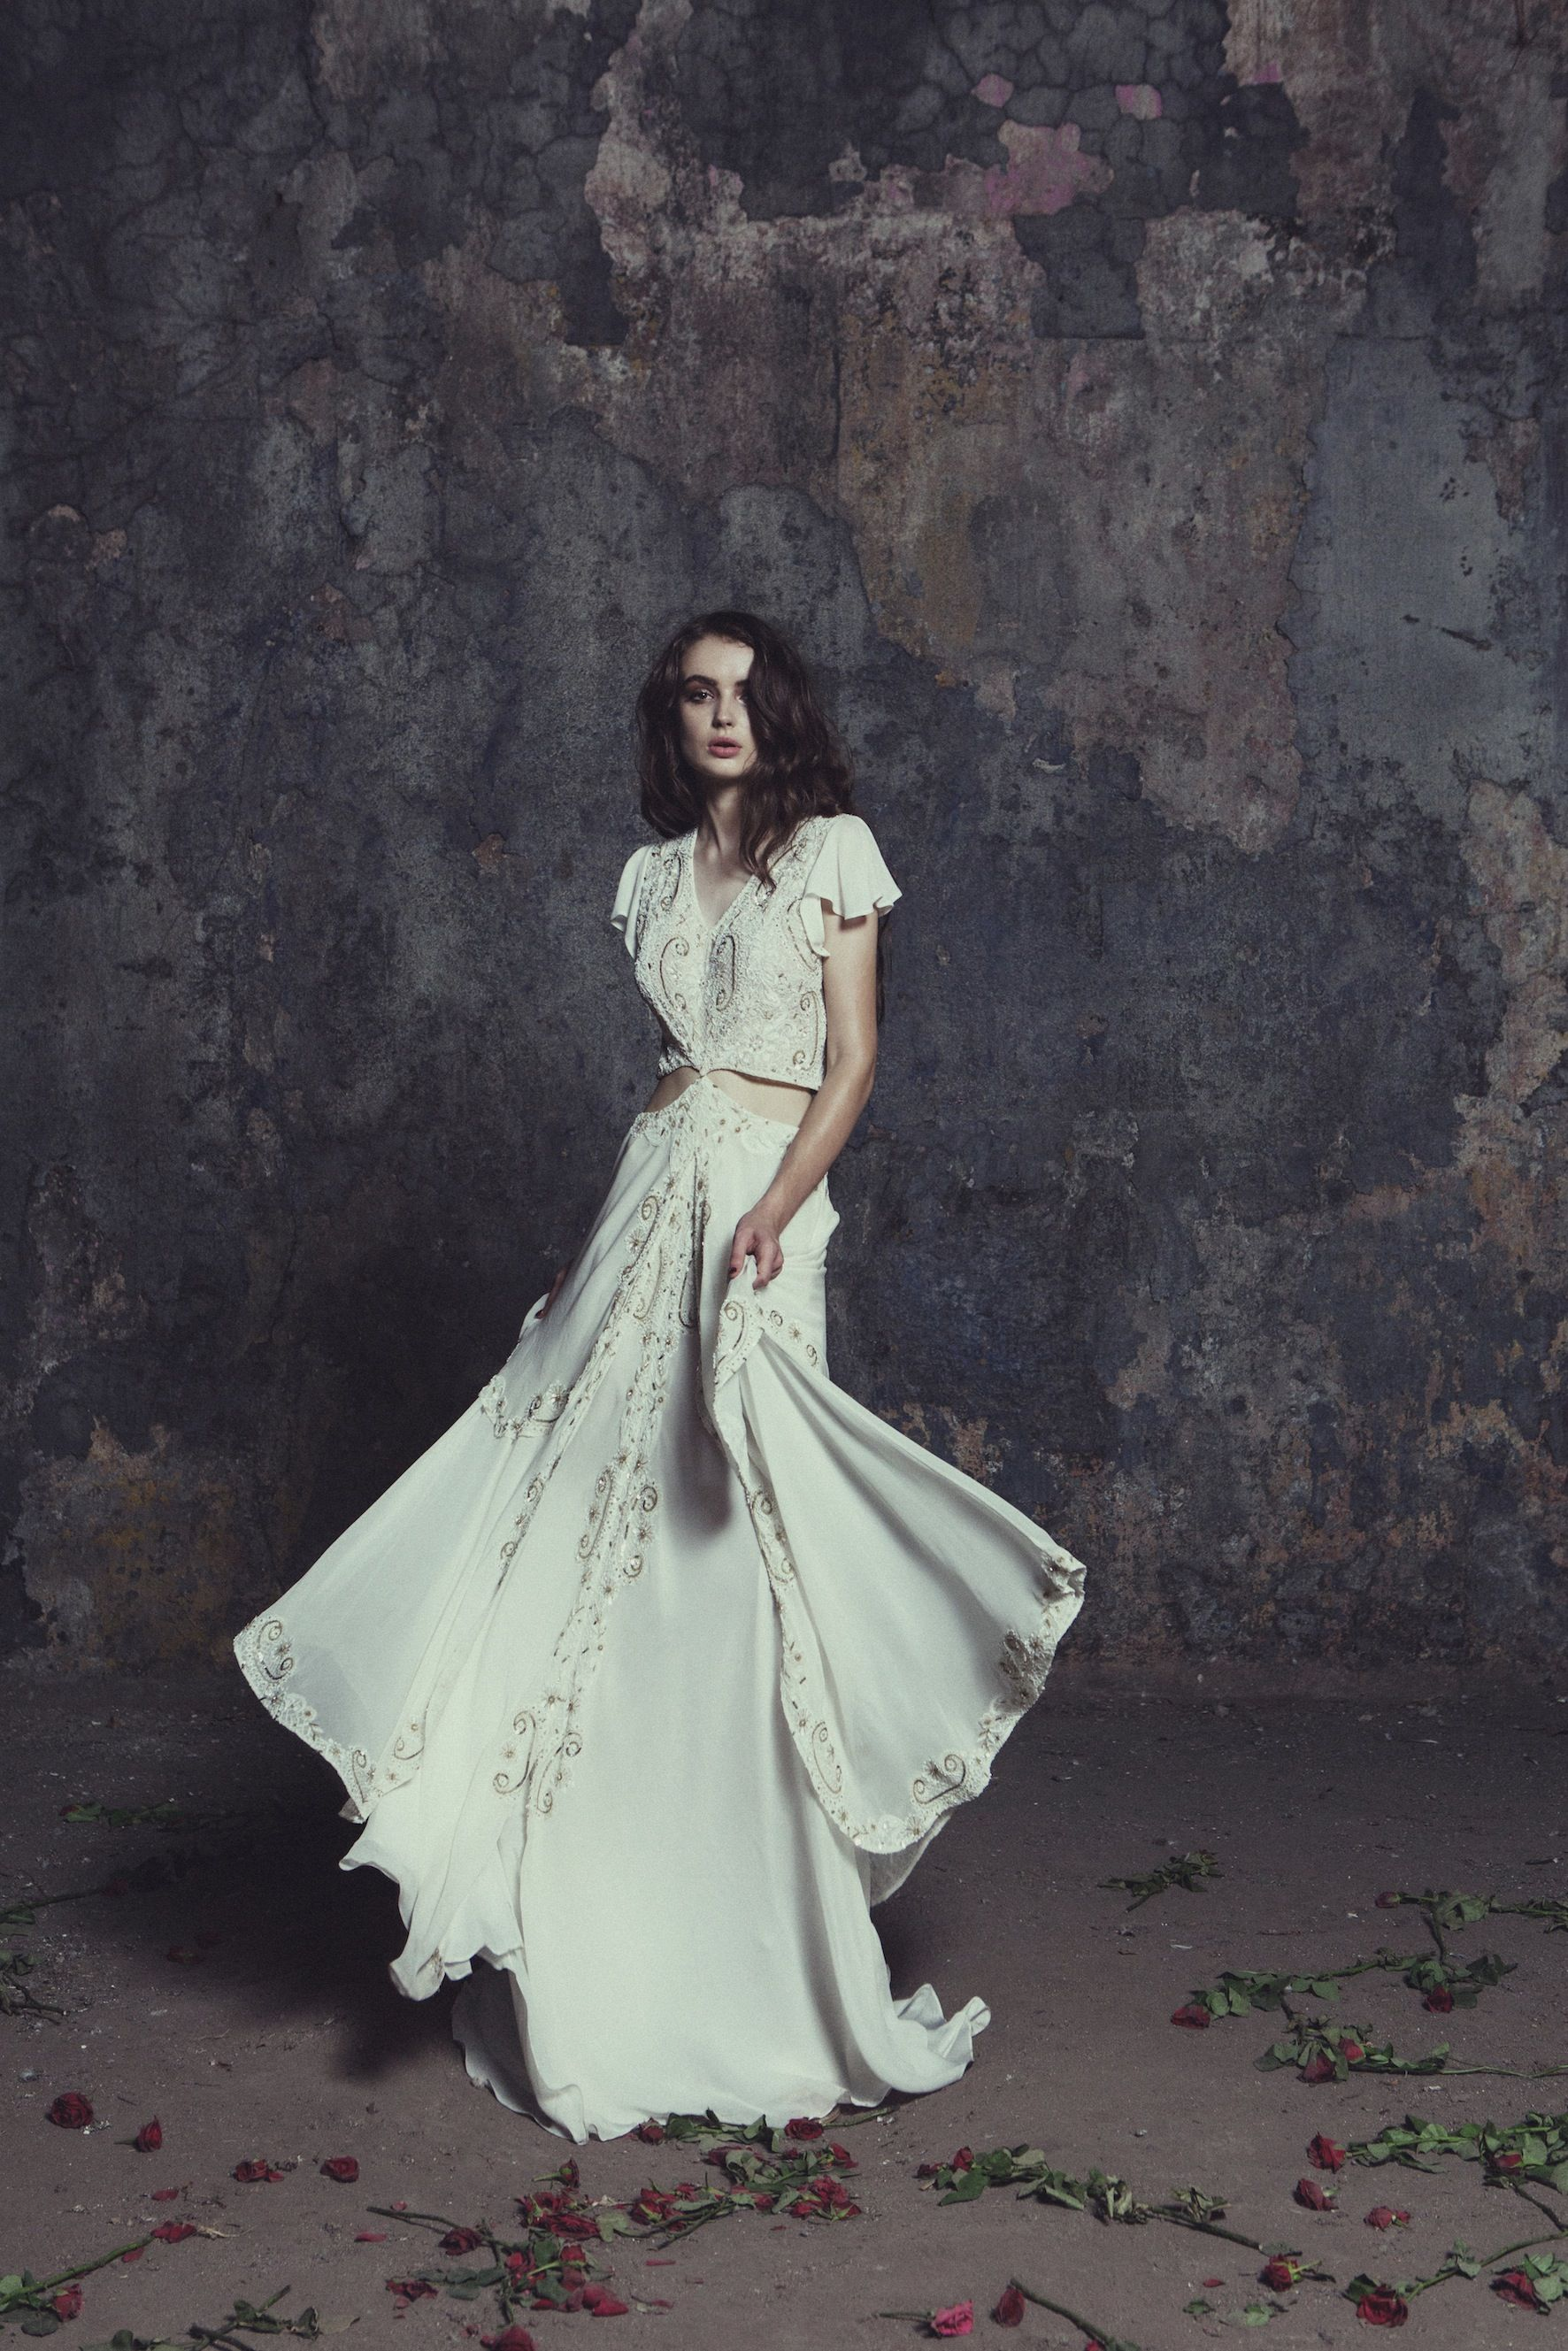 The risley this stunning two piece wedding gown has layers upon